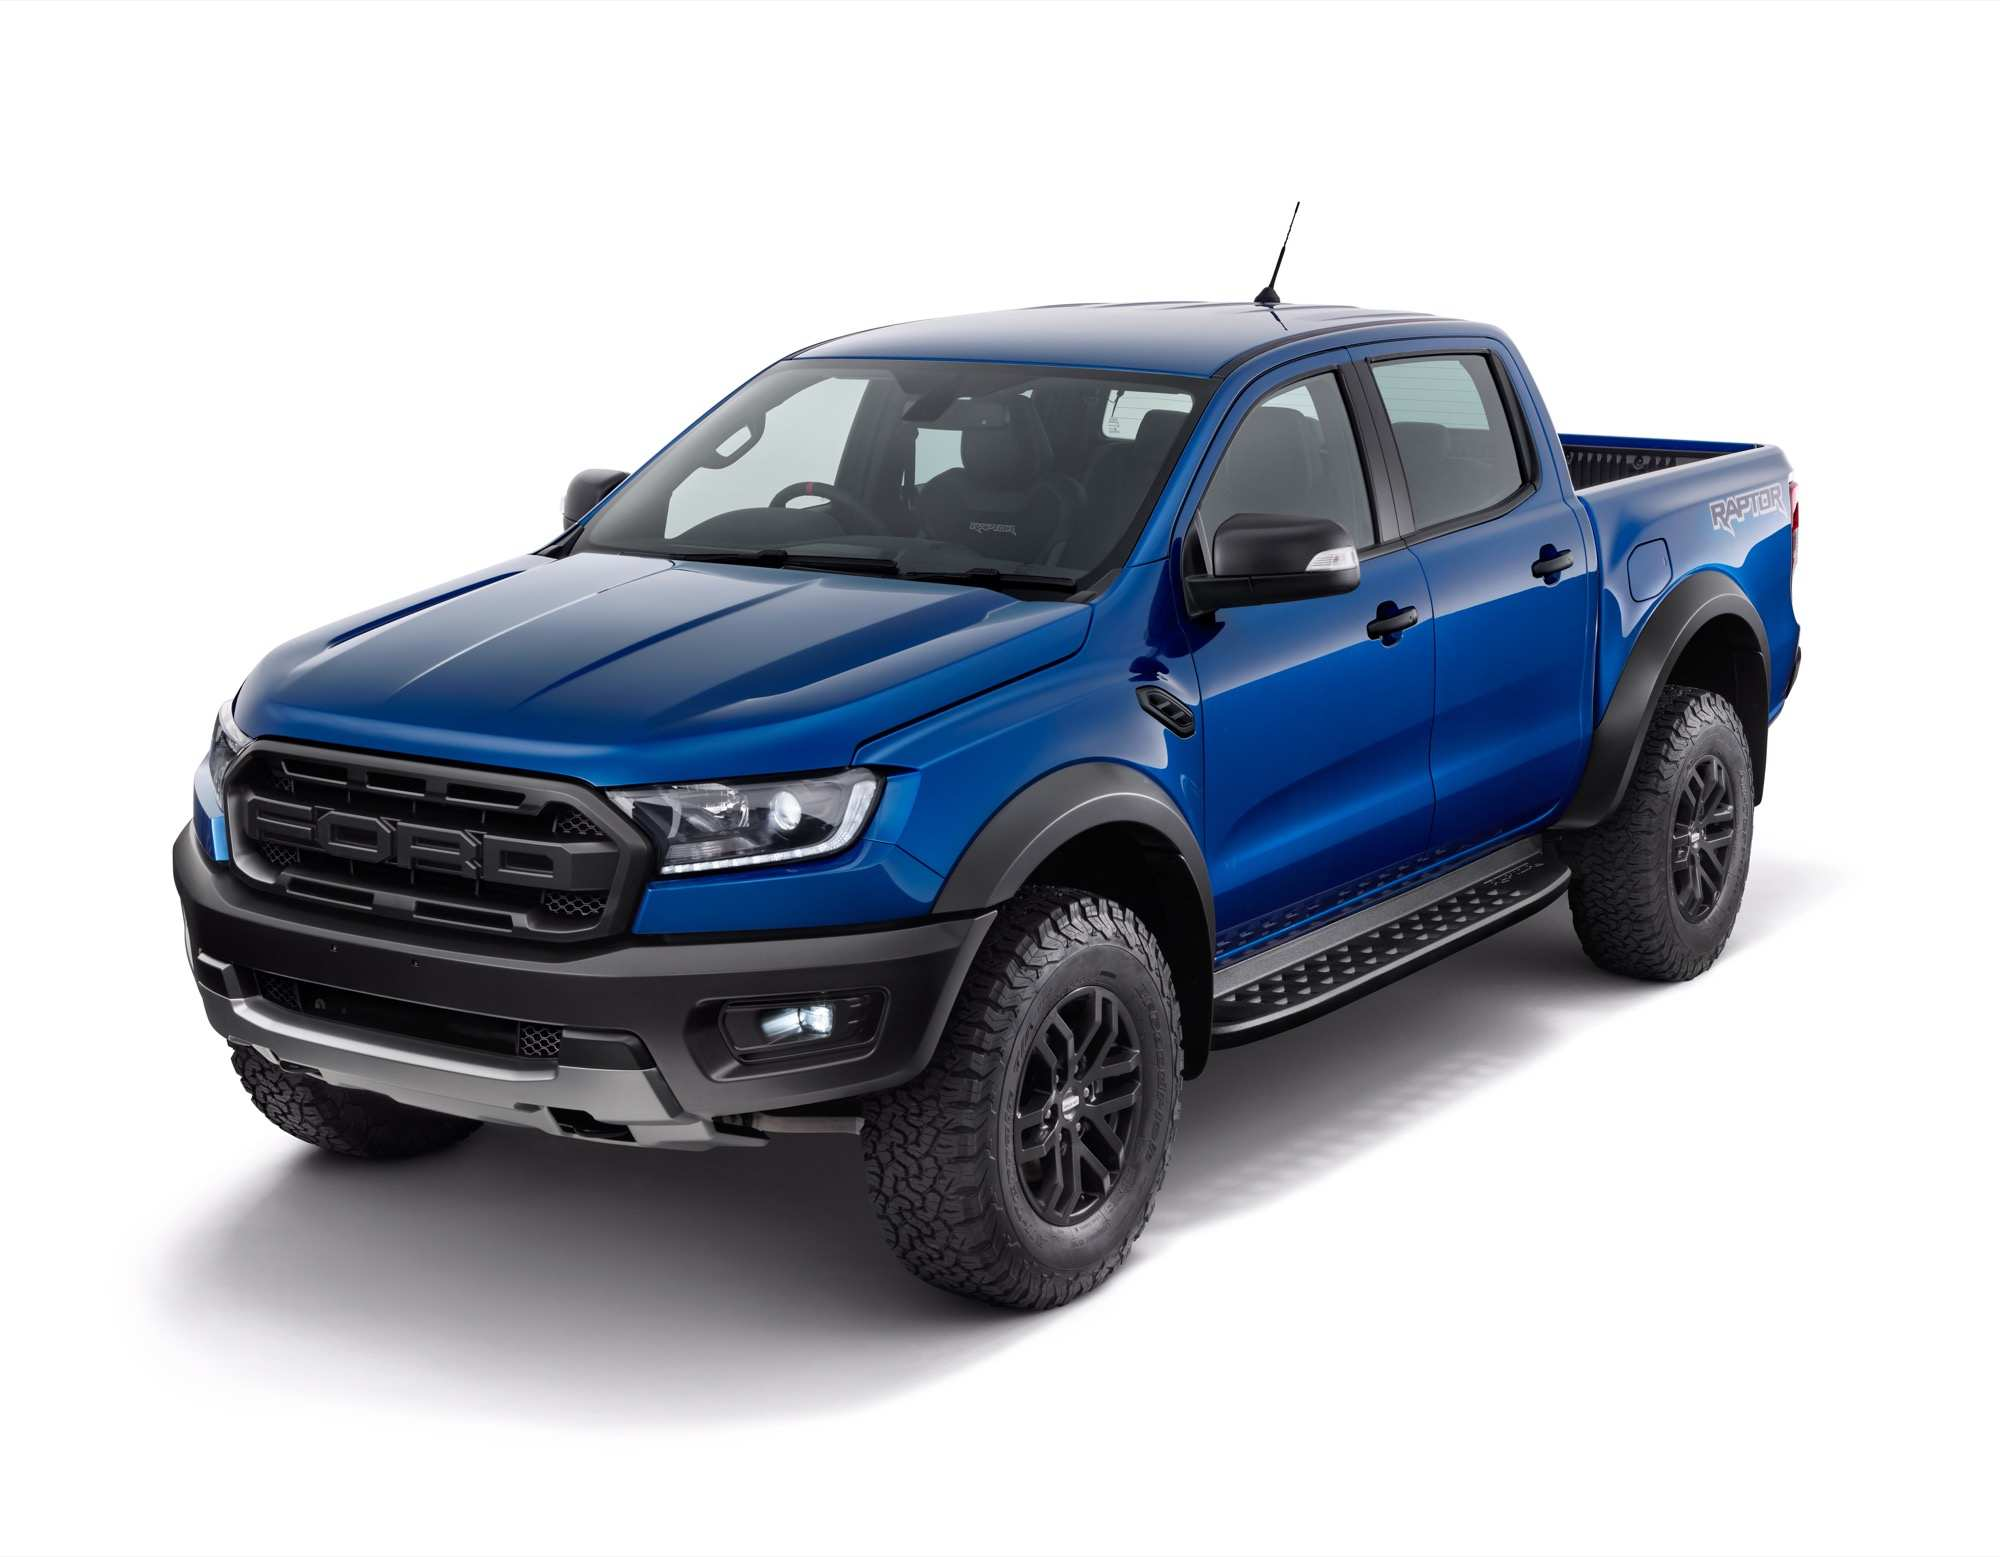 96 Concept of 2019 Ford Ranger Dimensions Performance for 2019 Ford Ranger Dimensions